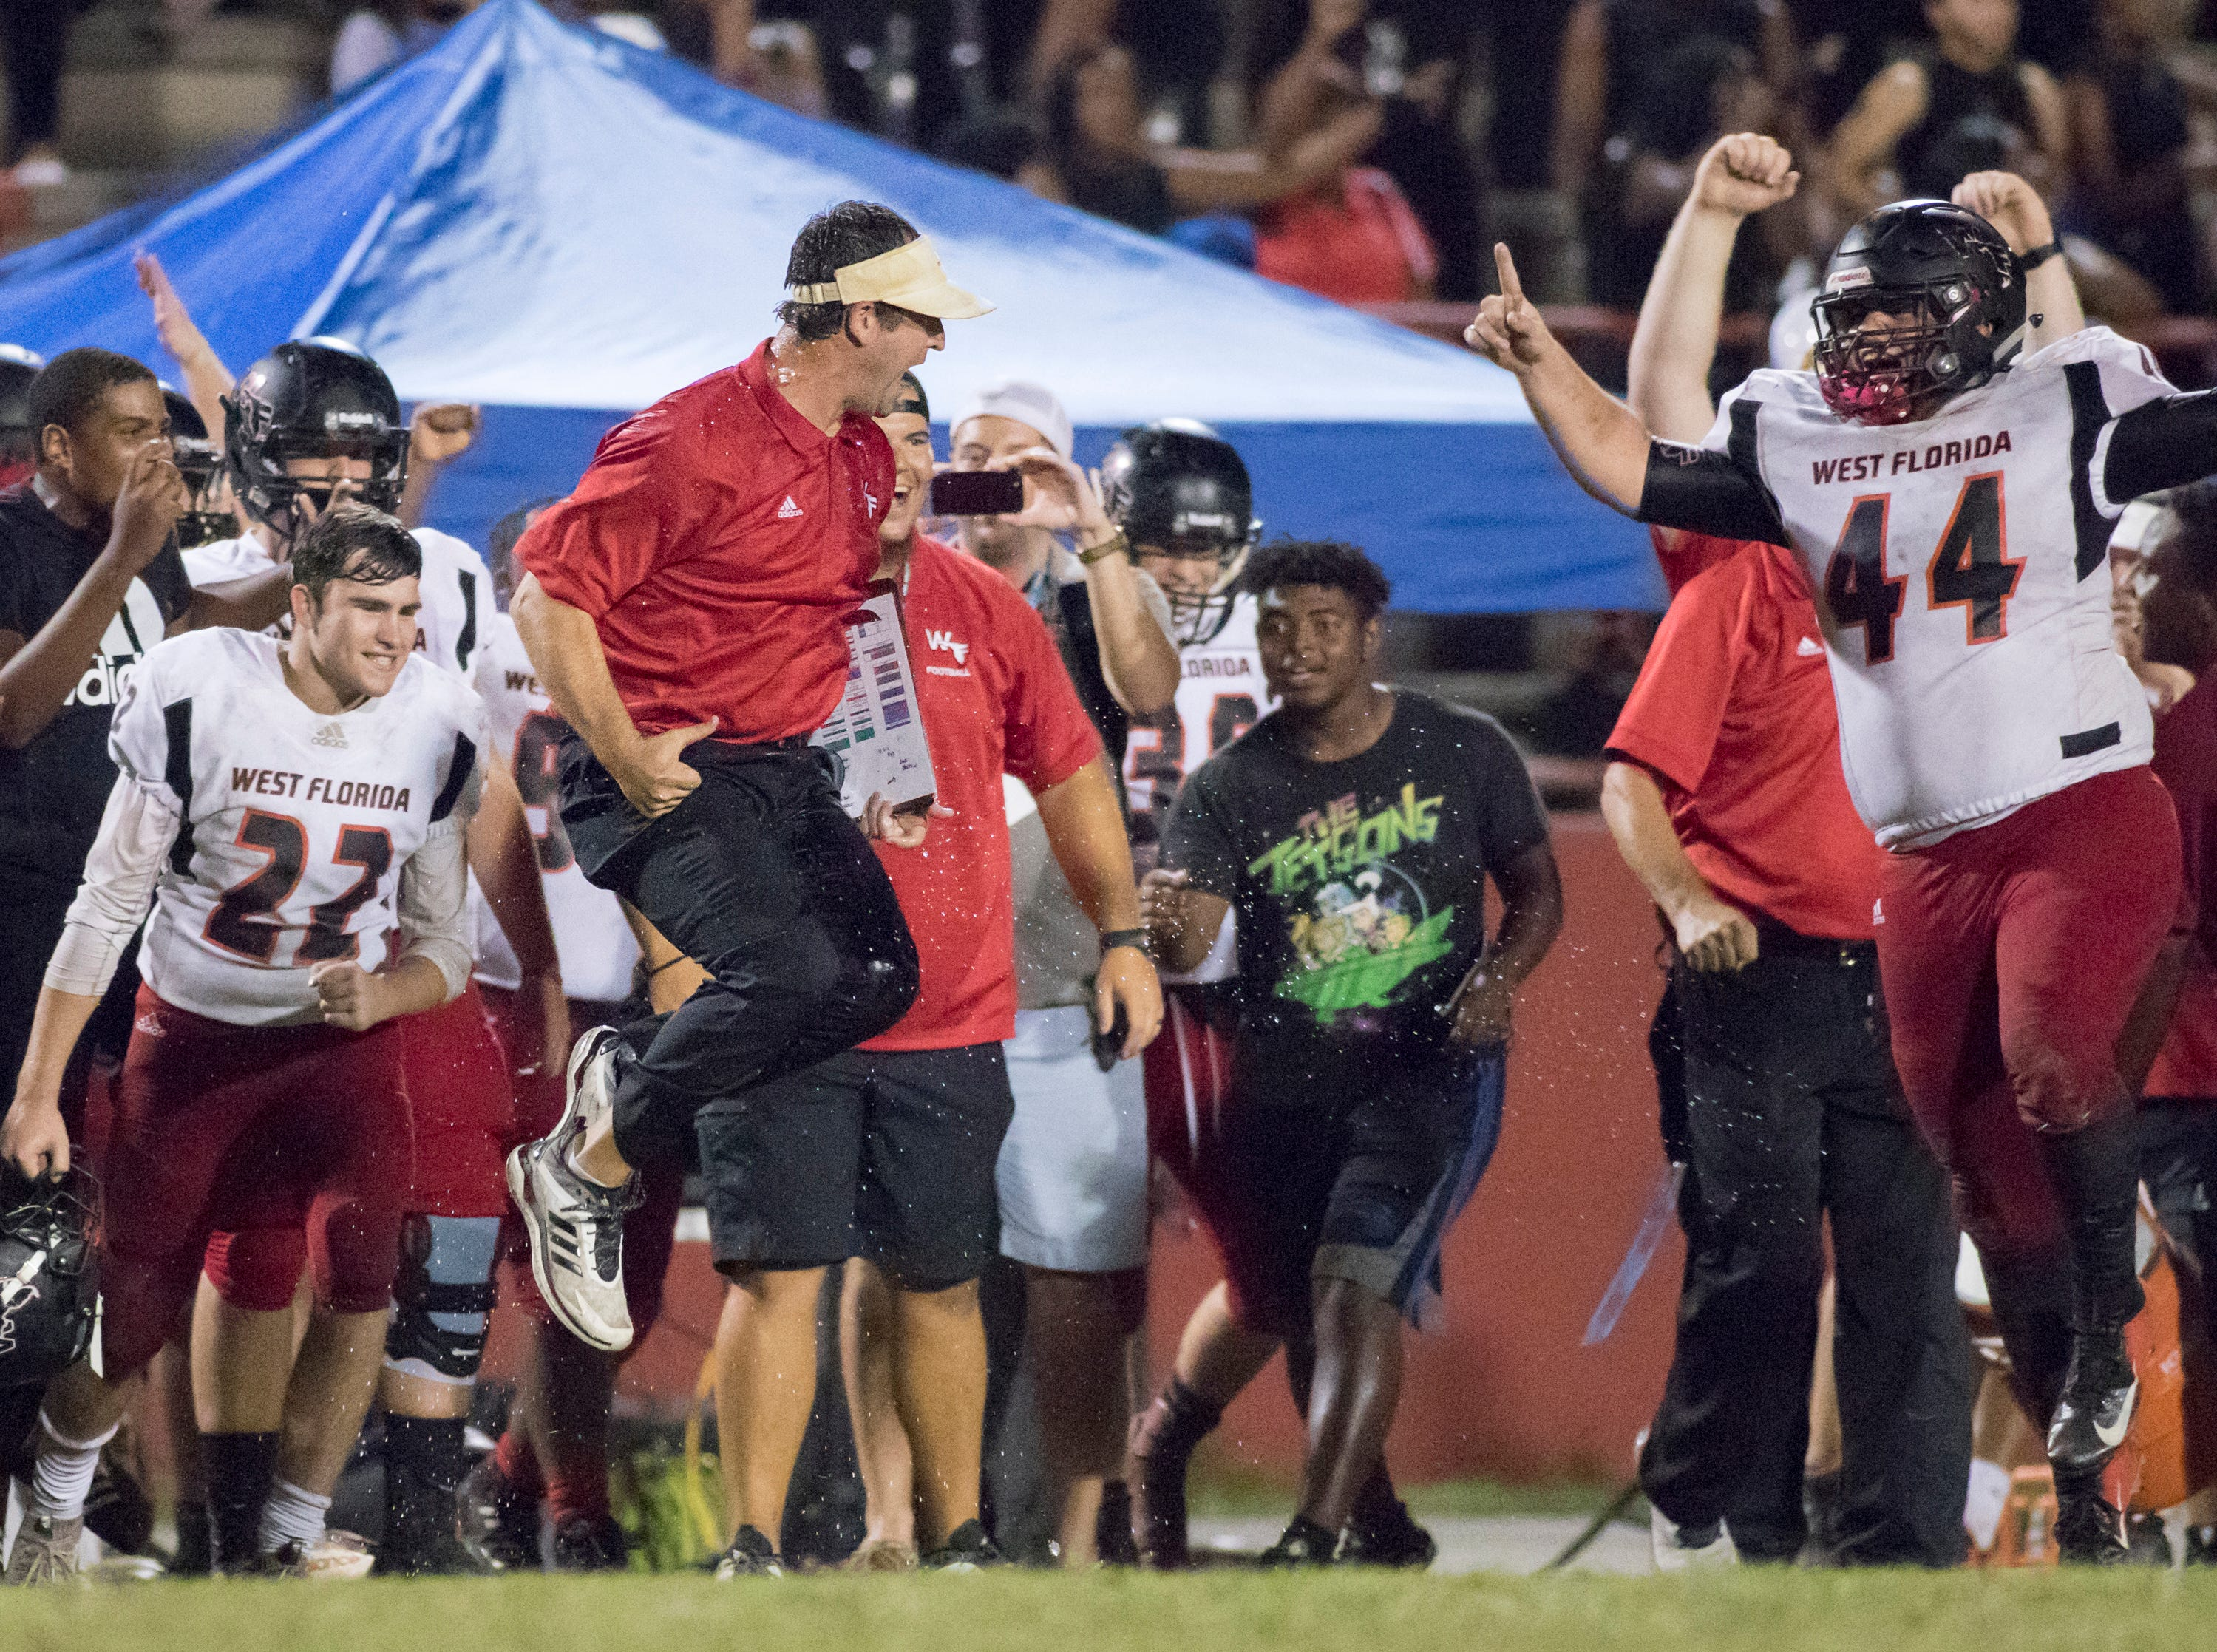 Jaguars head coach Rhett Summerford reacts after getting a Gatorade bath after a thrilling 27-24 win during the West Florida vs Pine Forest football game at Pine Forest High School in Pensacola on Friday, October 5, 2018.